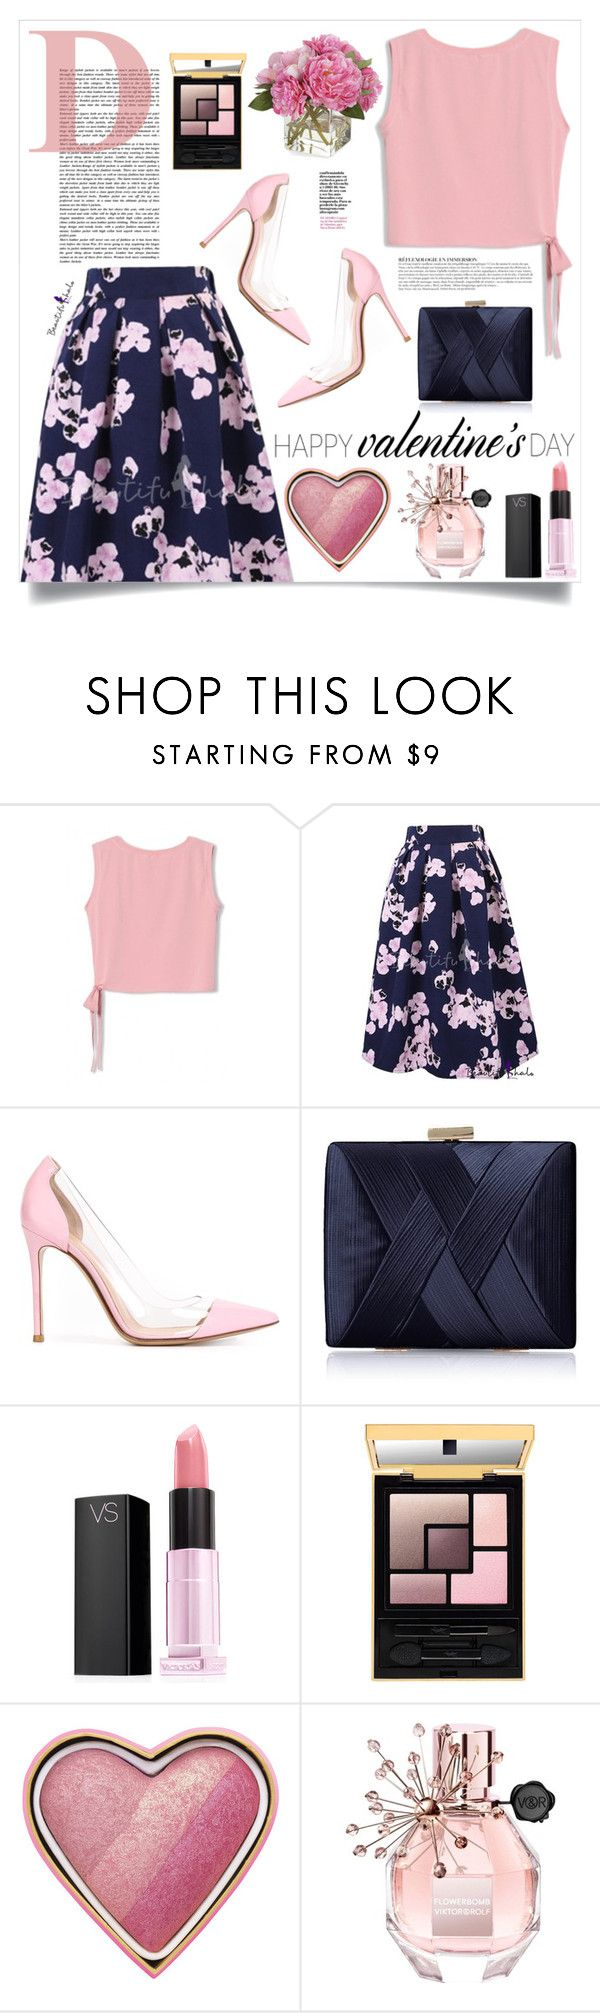 """""""Valentine's Day Date Outfit"""" by katrinaalice ❤ liked on Polyvore featuring Anja, Gianvito Rossi, La Regale, Victoria's Secret, Too Faced Cosmetics, Viktor & Rolf, Diane James, women's clothing, women and female"""